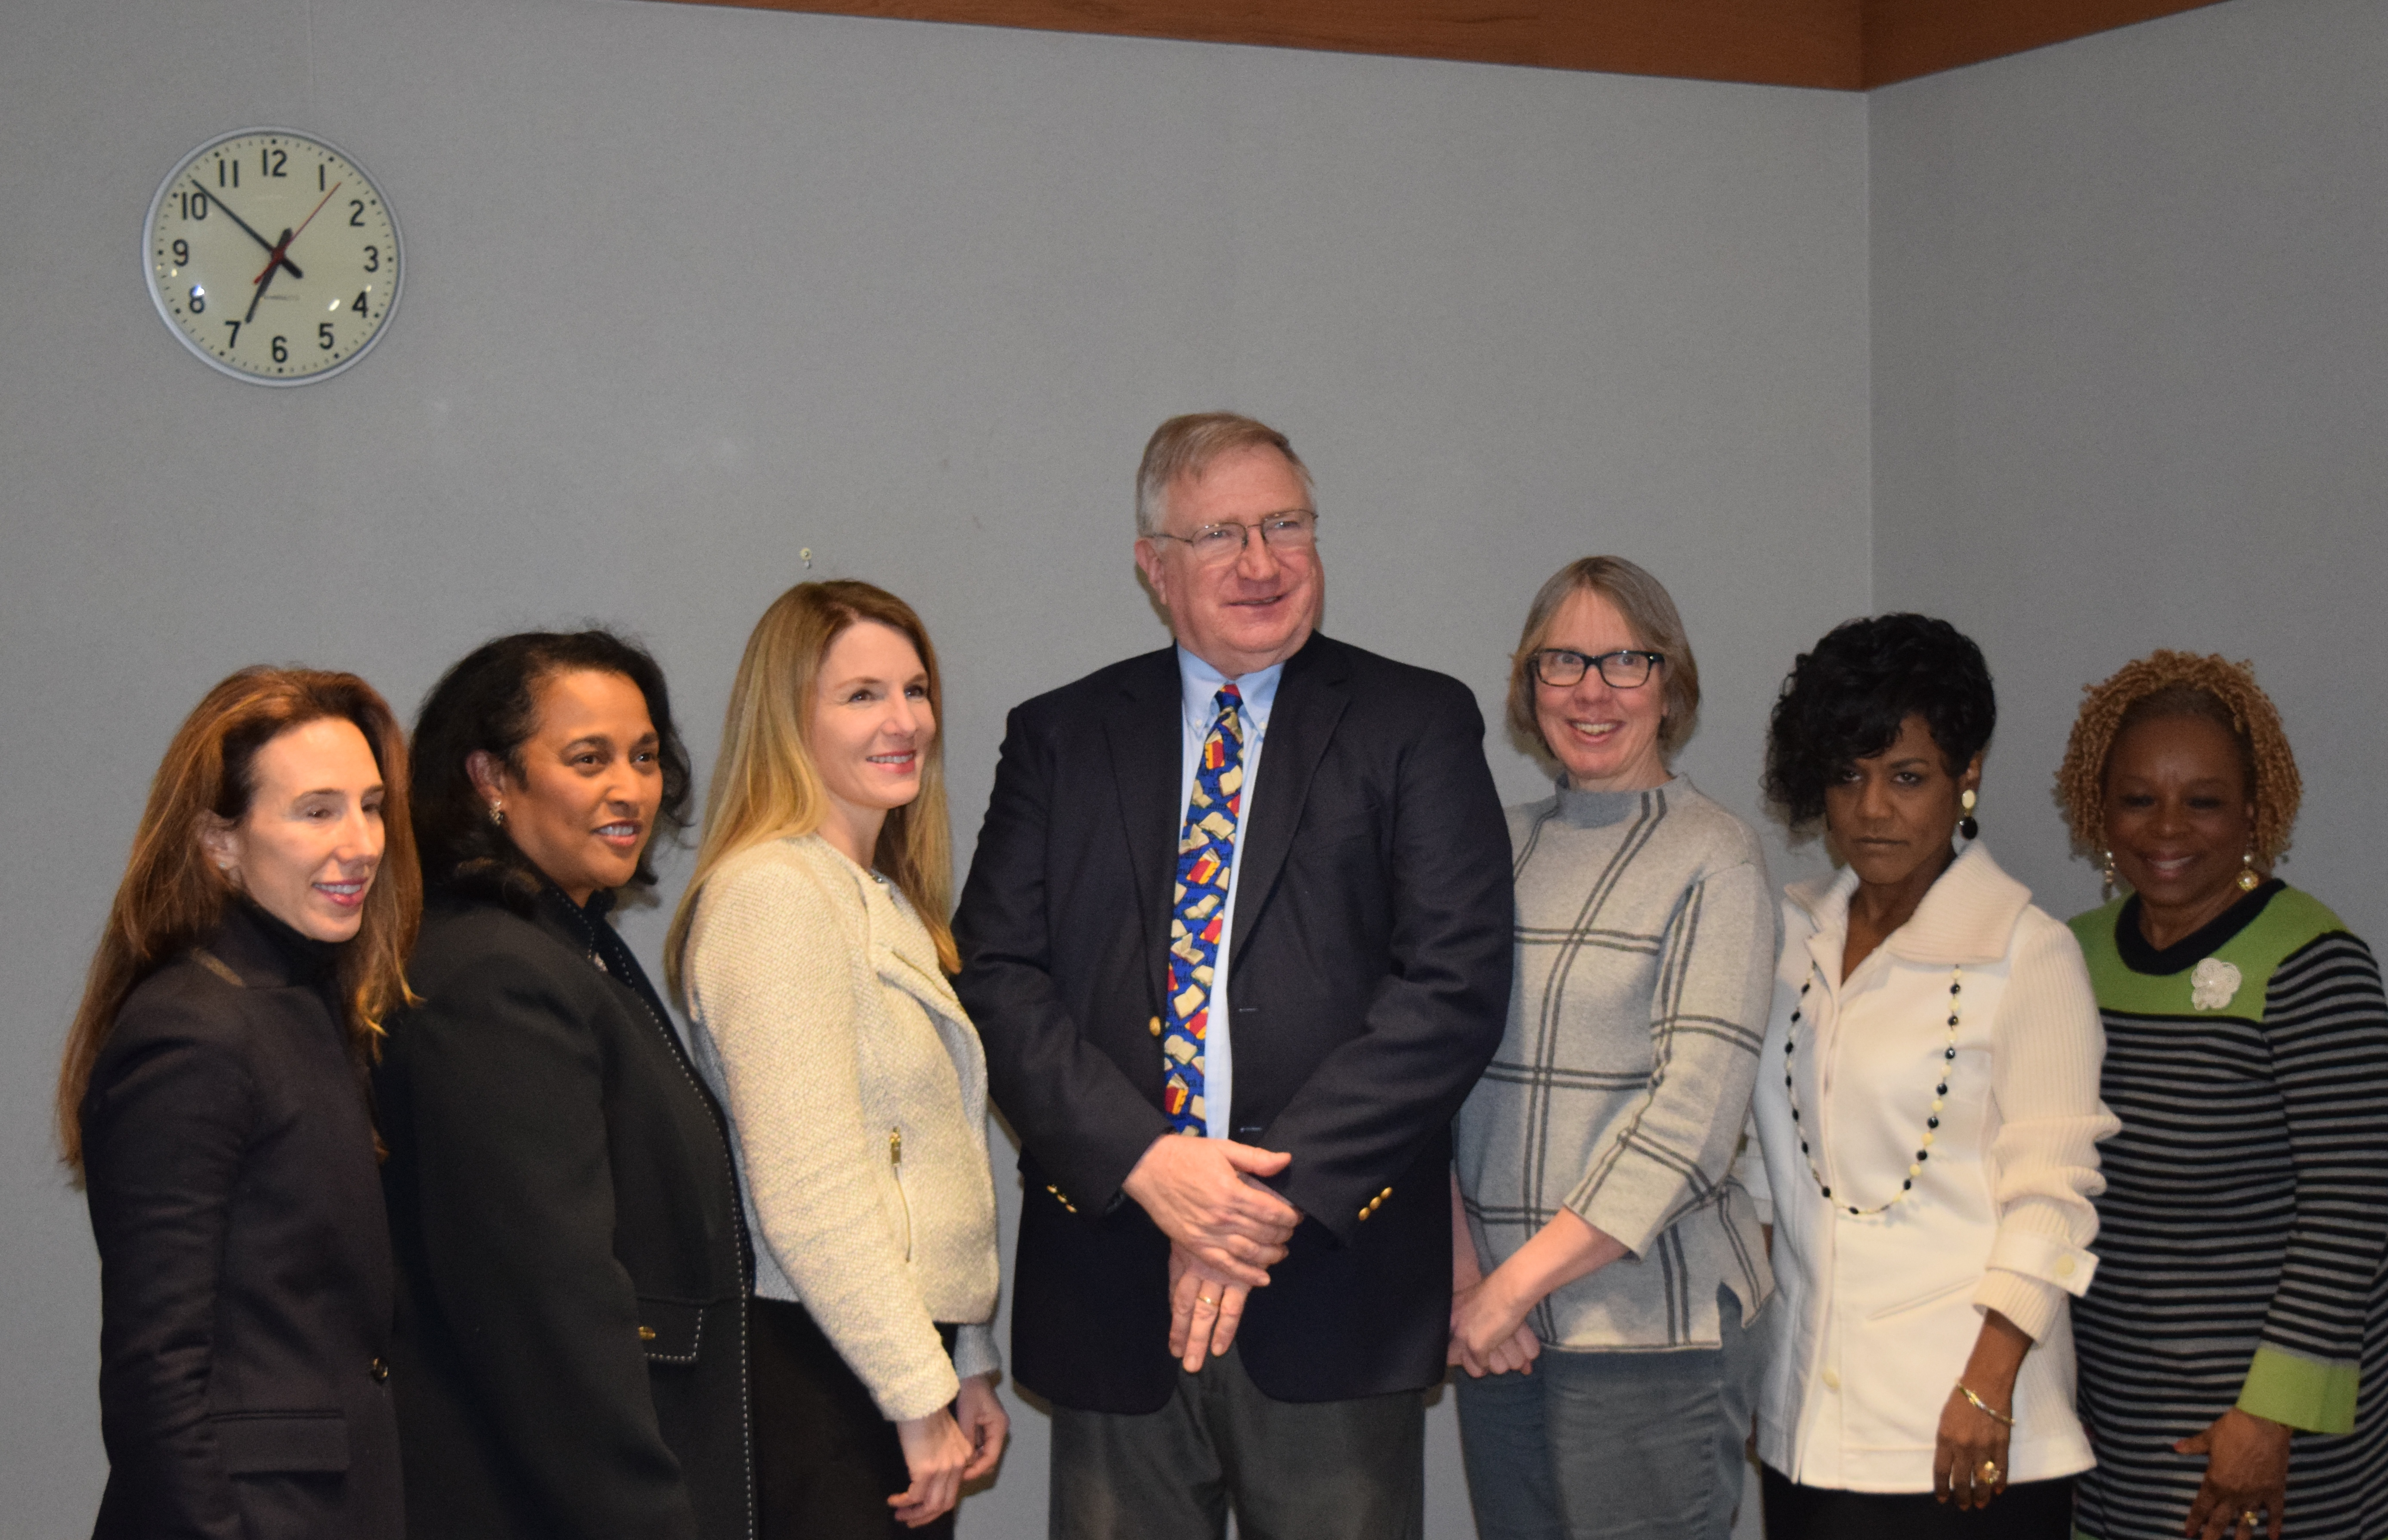 The AAPS Board of Education standing